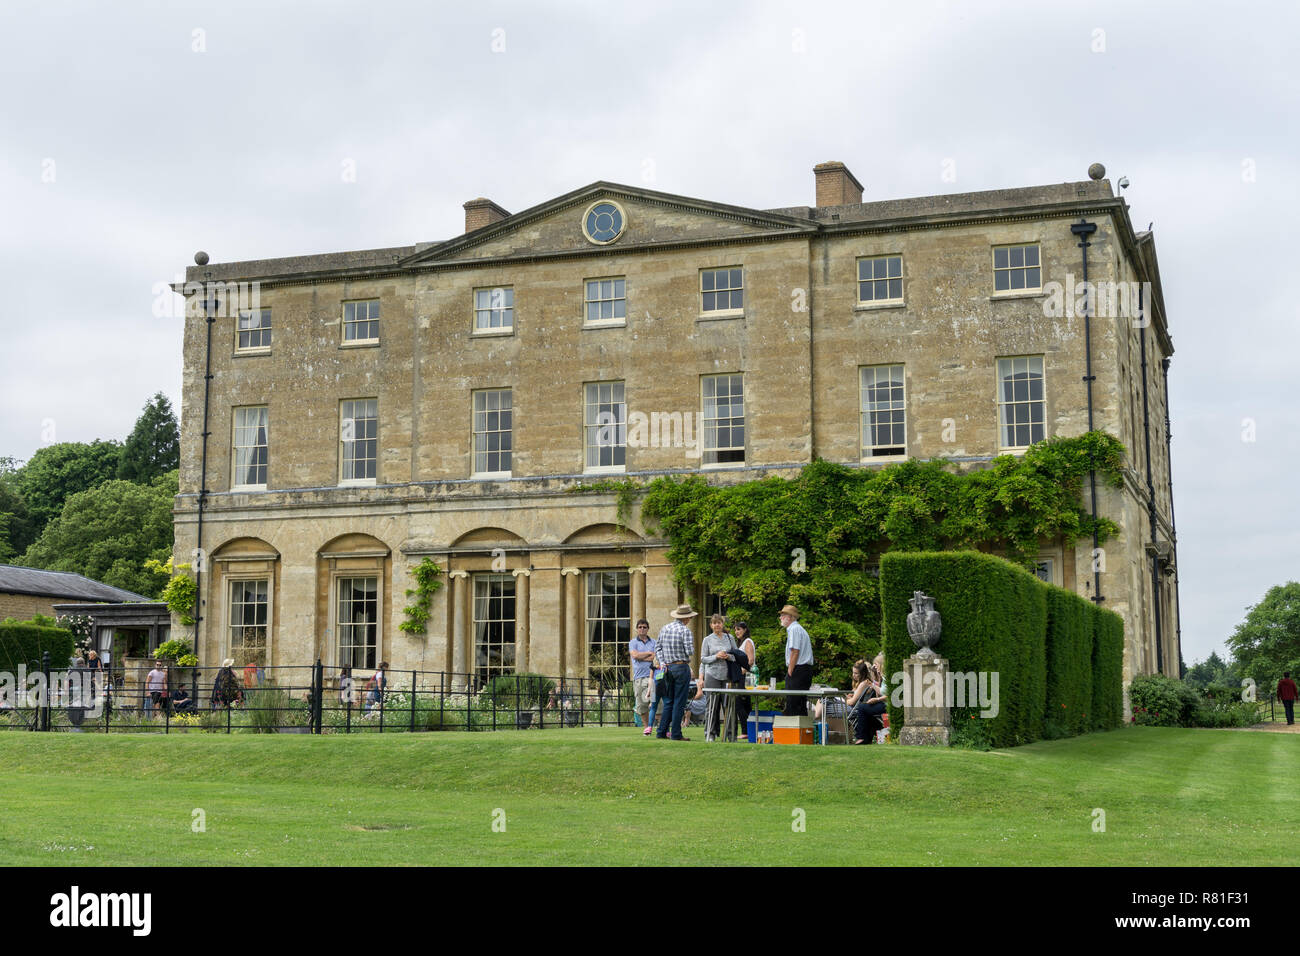 Courteenhall Hall, a late 18th century mansion, built for the Wake family by Samuel Saxon; Courteenhall, Northamptonshire, UK - Stock Image